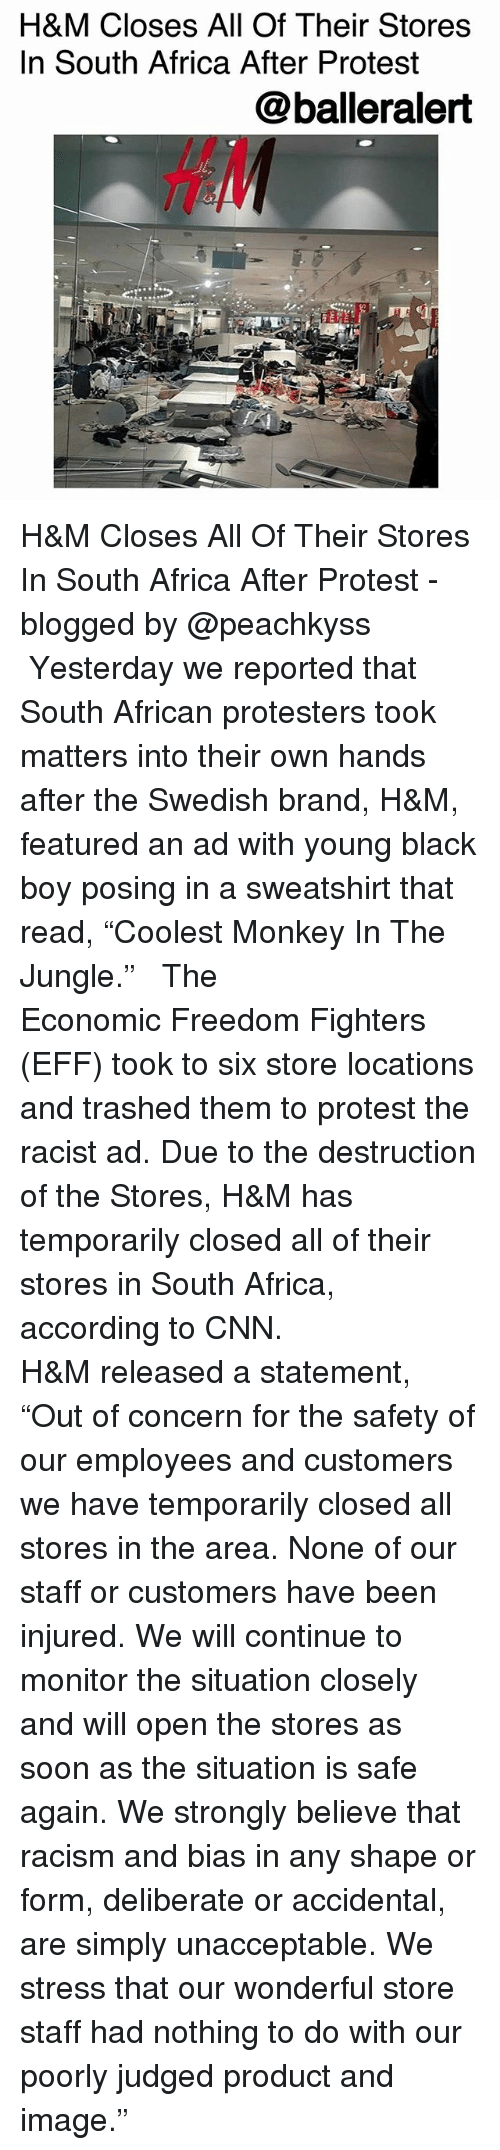 "Africa, cnn.com, and Memes: H&M Closes All Of Their Stores  In South Africa After Protest  @balleralert  HA H&M Closes All Of Their Stores In South Africa After Protest -blogged by @peachkyss ⠀⠀⠀⠀⠀⠀⠀ ⠀⠀⠀⠀⠀⠀⠀ Yesterday we reported that South African protesters took matters into their own hands after the Swedish brand, H&M, featured an ad with young black boy posing in a sweatshirt that read, ""Coolest Monkey In The Jungle."" ⠀⠀⠀⠀⠀⠀⠀ ⠀⠀⠀⠀⠀⠀⠀ The Economic Freedom Fighters (EFF) took to six store locations and trashed them to protest the racist ad. Due to the destruction of the Stores, H&M has temporarily closed all of their stores in South Africa, according to CNN. ⠀⠀⠀⠀⠀⠀⠀ ⠀⠀⠀⠀⠀⠀⠀ H&M released a statement, ""Out of concern for the safety of our employees and customers we have temporarily closed all stores in the area. None of our staff or customers have been injured. We will continue to monitor the situation closely and will open the stores as soon as the situation is safe again. We strongly believe that racism and bias in any shape or form, deliberate or accidental, are simply unacceptable. We stress that our wonderful store staff had nothing to do with our poorly judged product and image."""